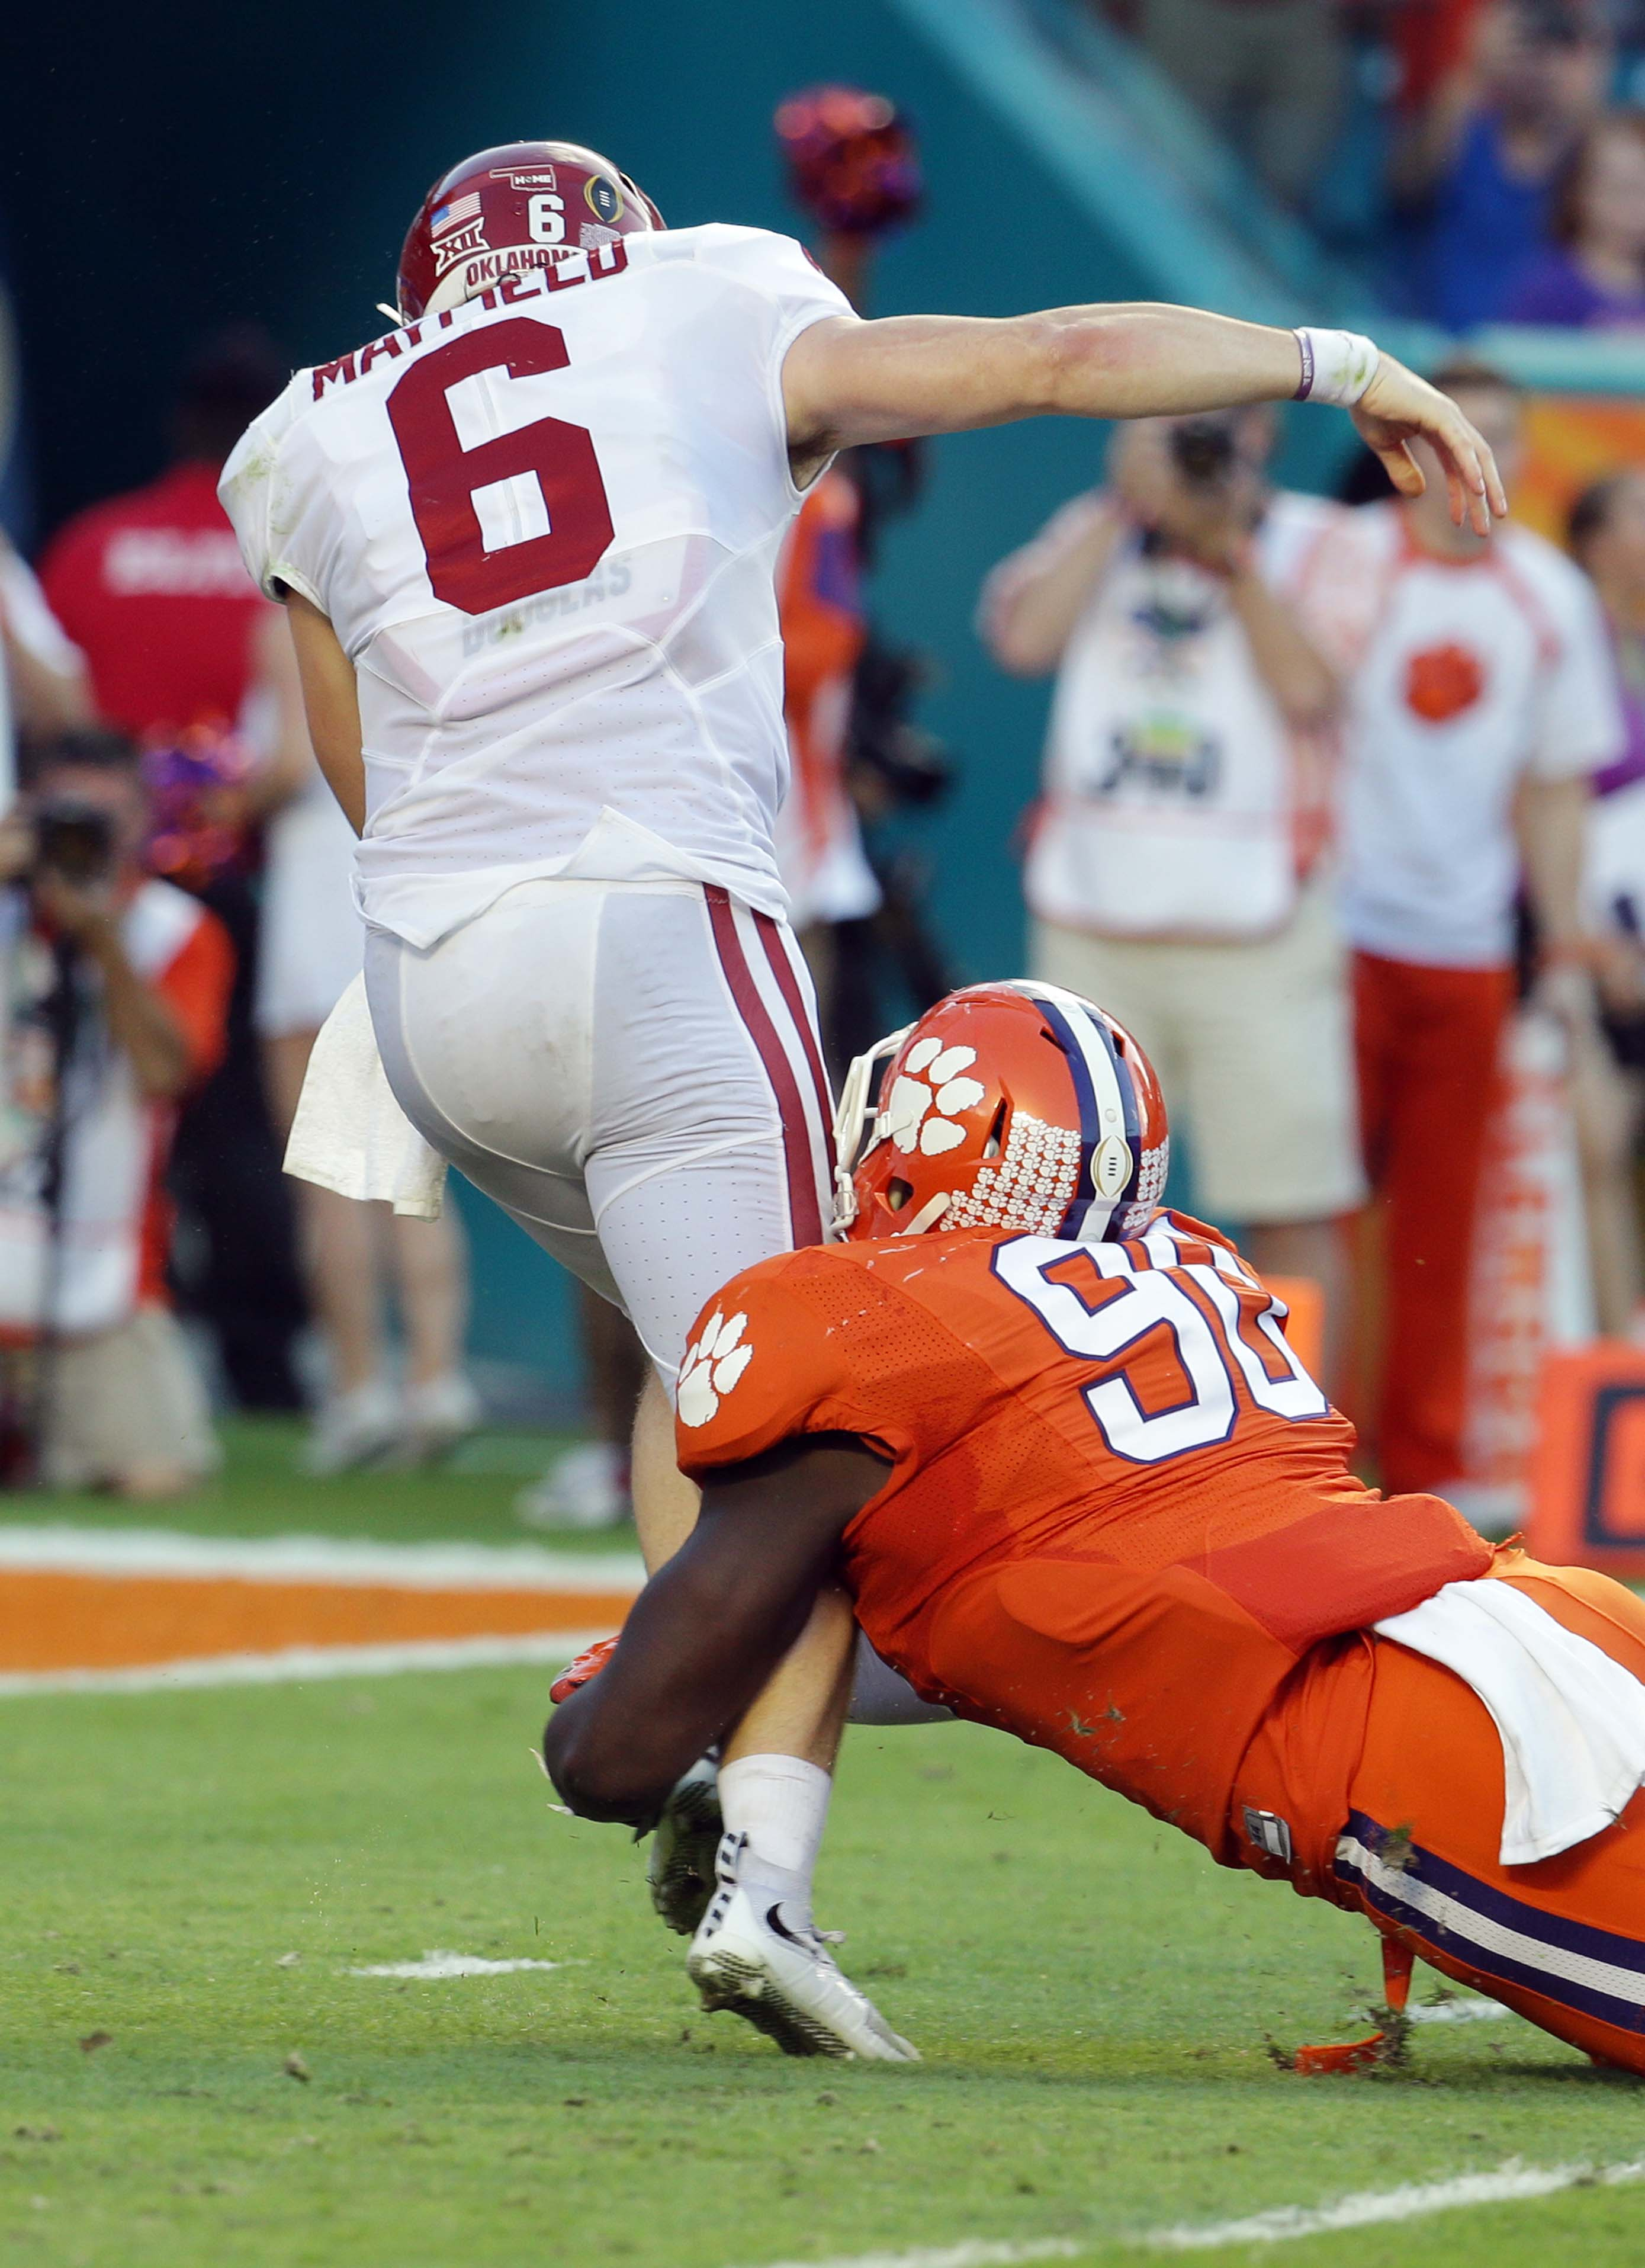 Oklahoma quarterback Baker Mayfield (6) is sacked by Clemson defensive end Shaq Lawson (90) during the first half of the Orange Bowl NCAA college football semifinal playoff game, Thursday, Dec. 31, 2015, in Miami Gardens, Fla. (AP Photo/Lynne Sladky)